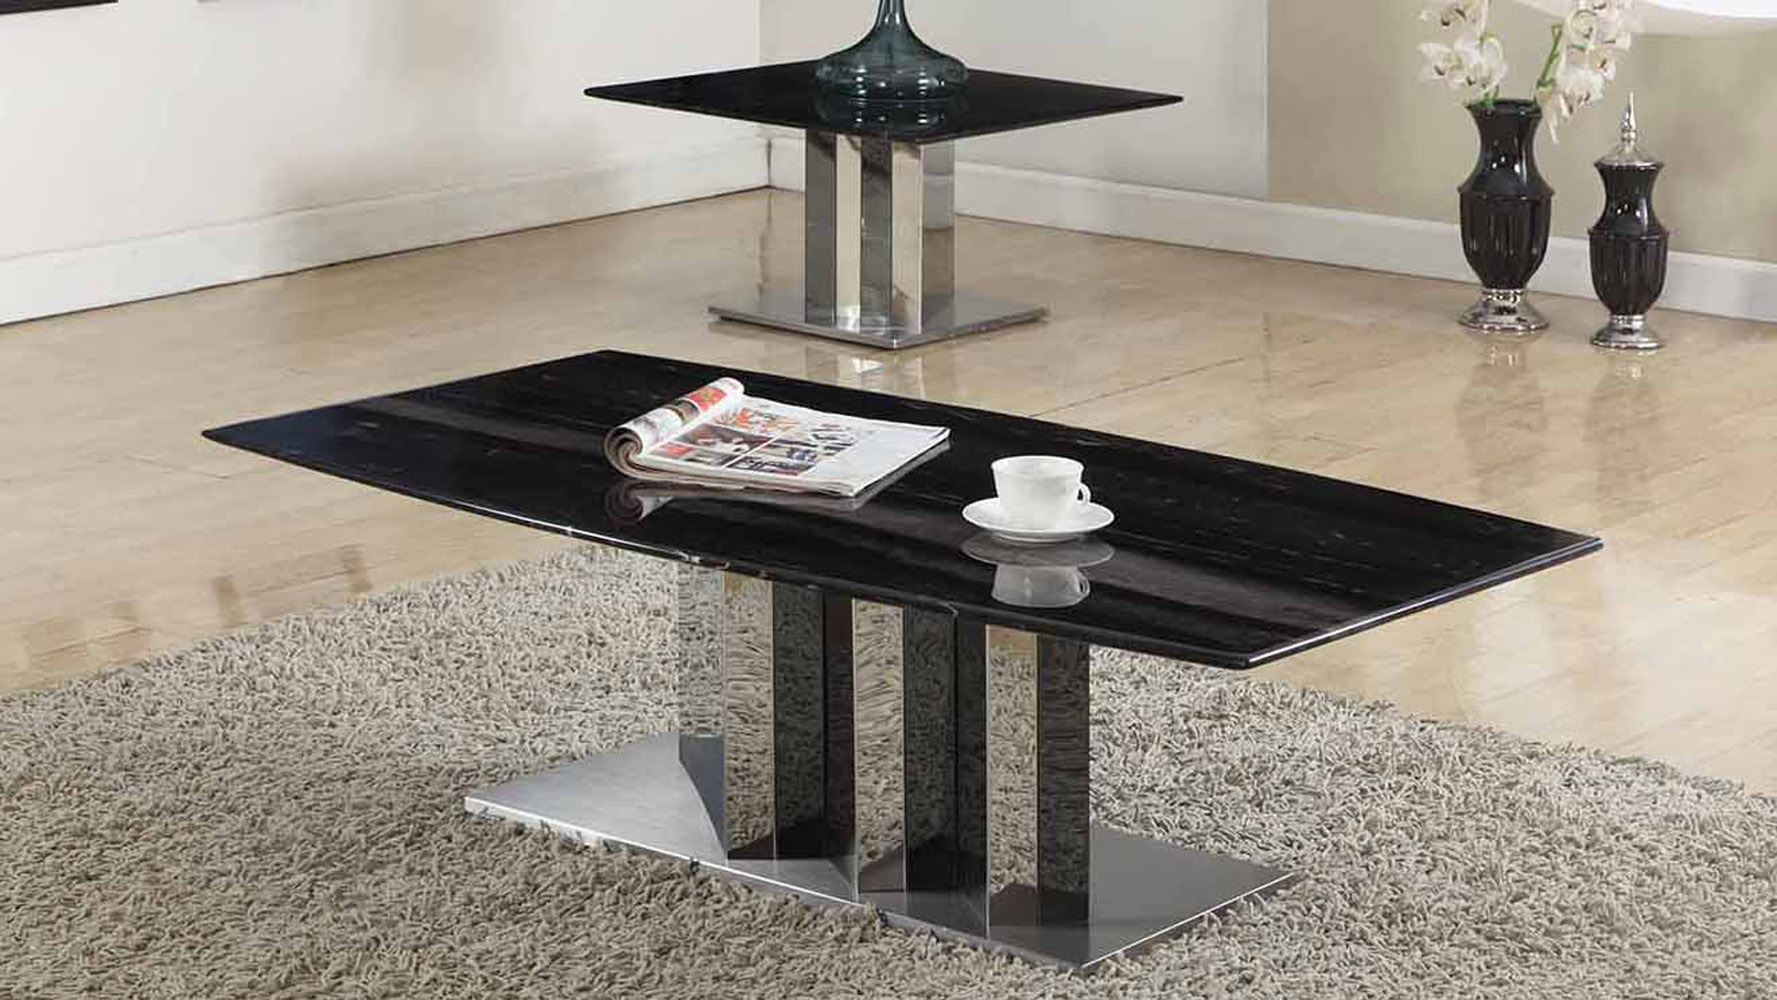 Top selling coffee table books images coffee table design ideas top selling coffee table books home decoration top selling coffee table books geotapseo images geotapseo Gallery